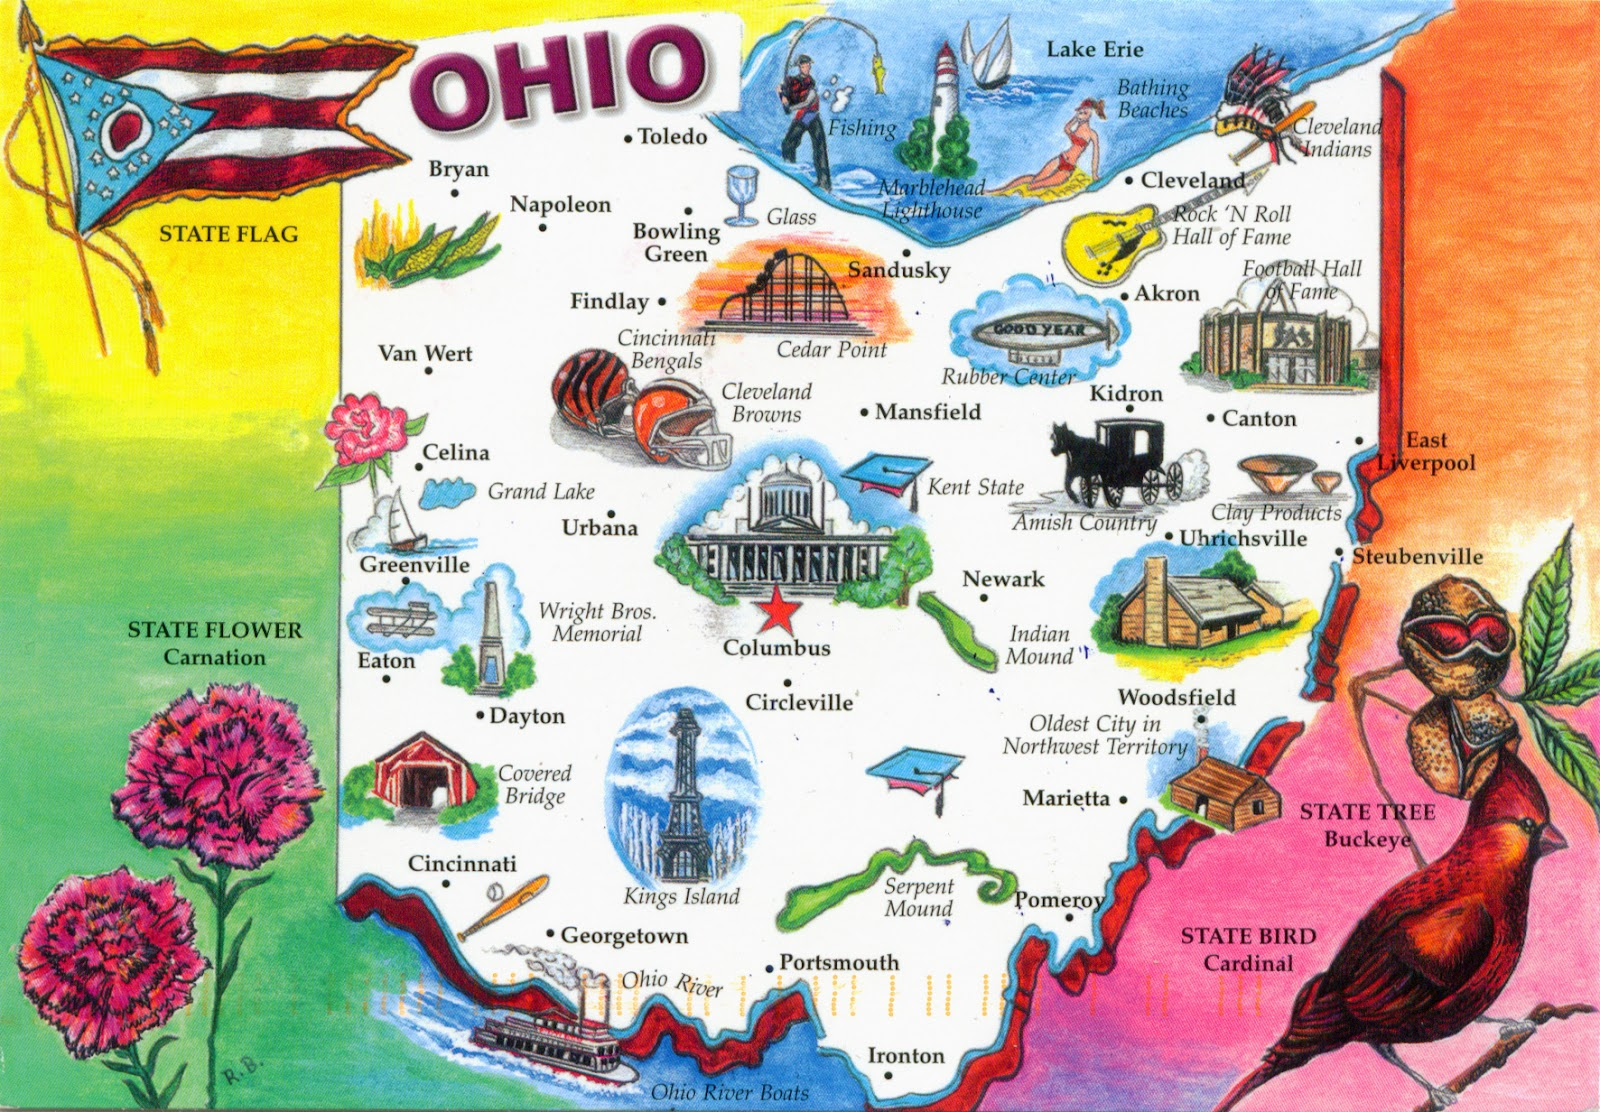 World Come To My Home 1355 United States Ohio Ohio Map And Flag